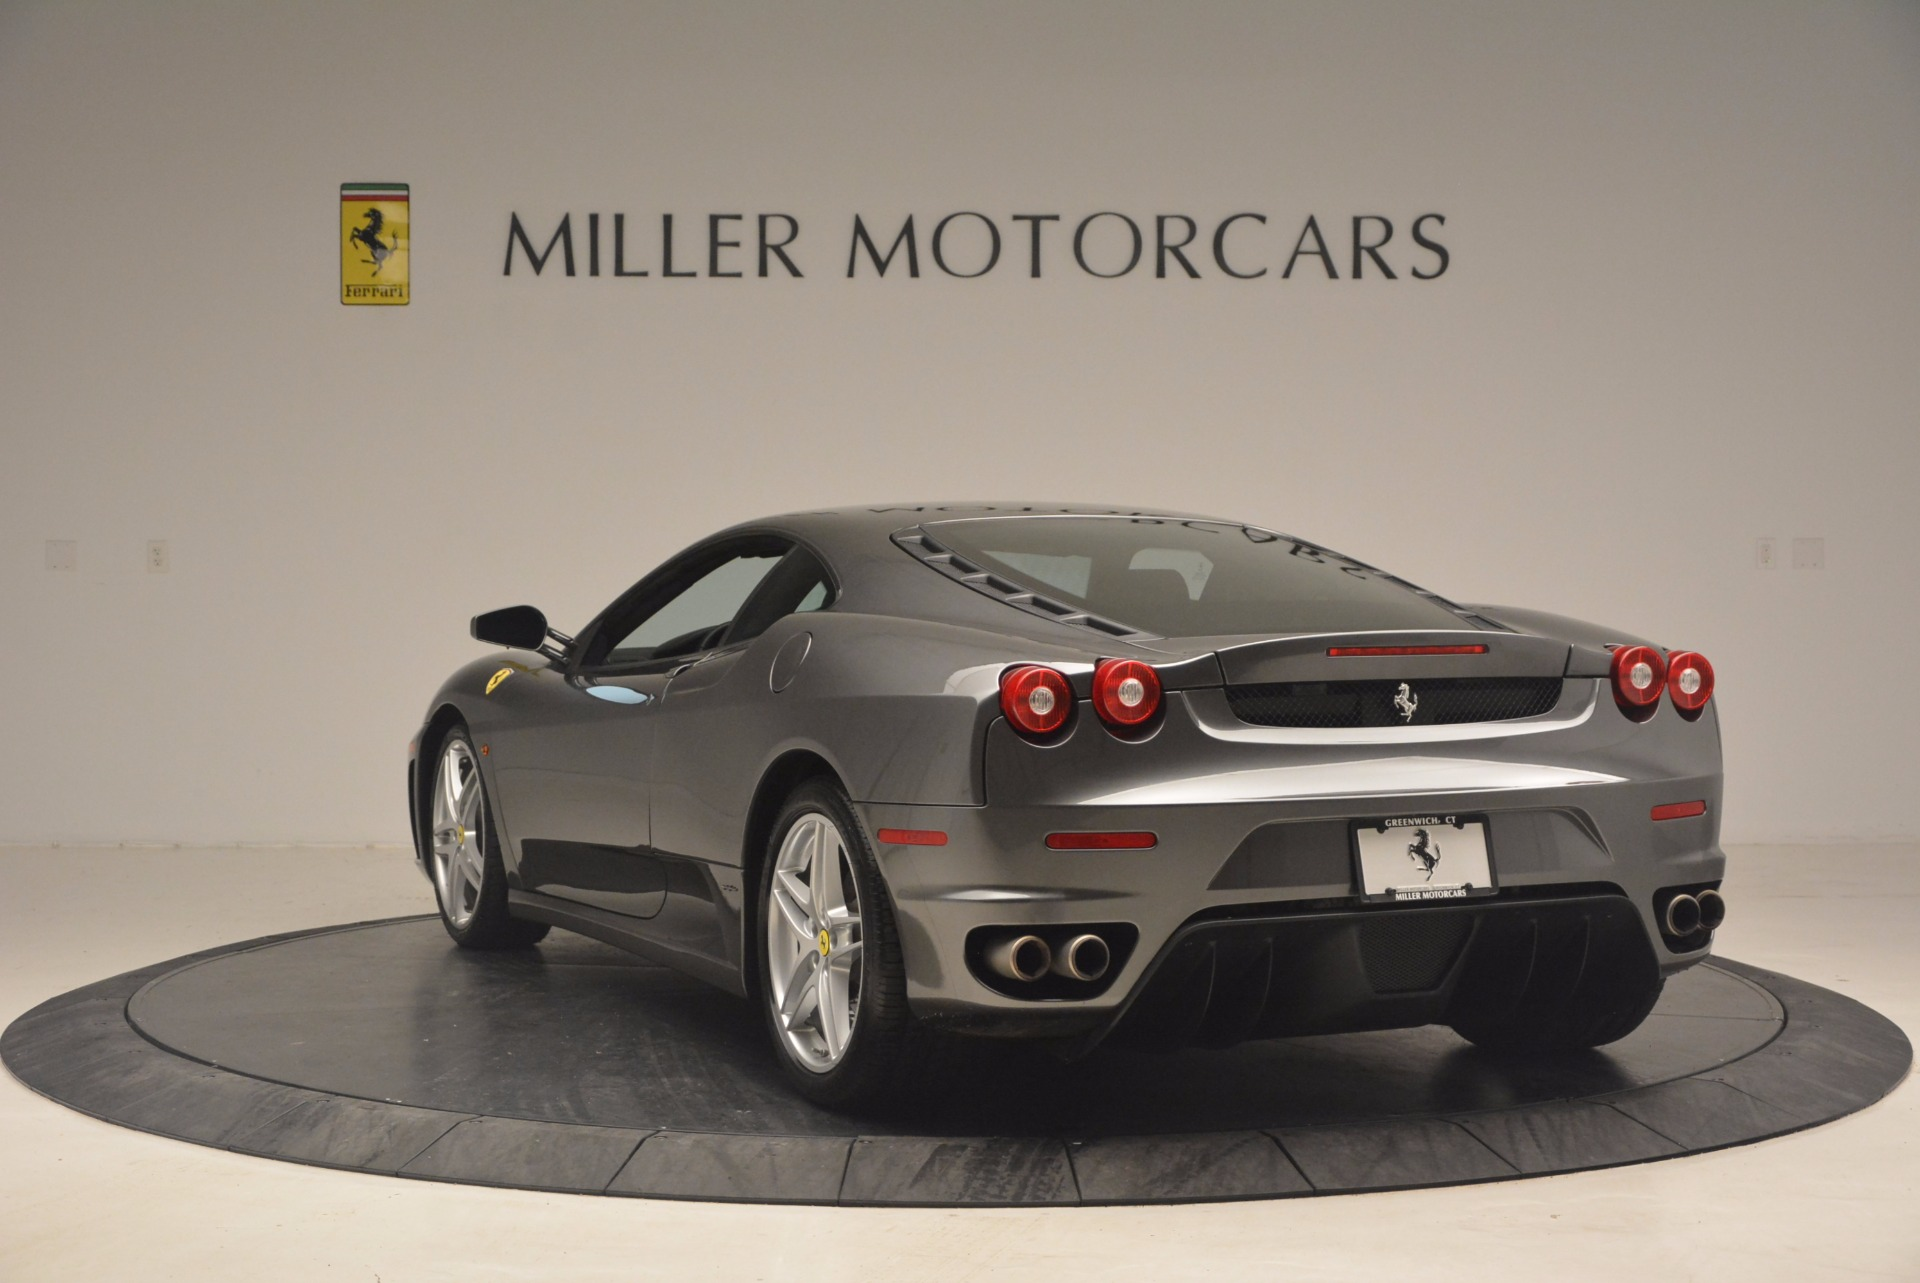 Used 2005 Ferrari F430 6-Speed Manual For Sale In Greenwich, CT 1286_p5